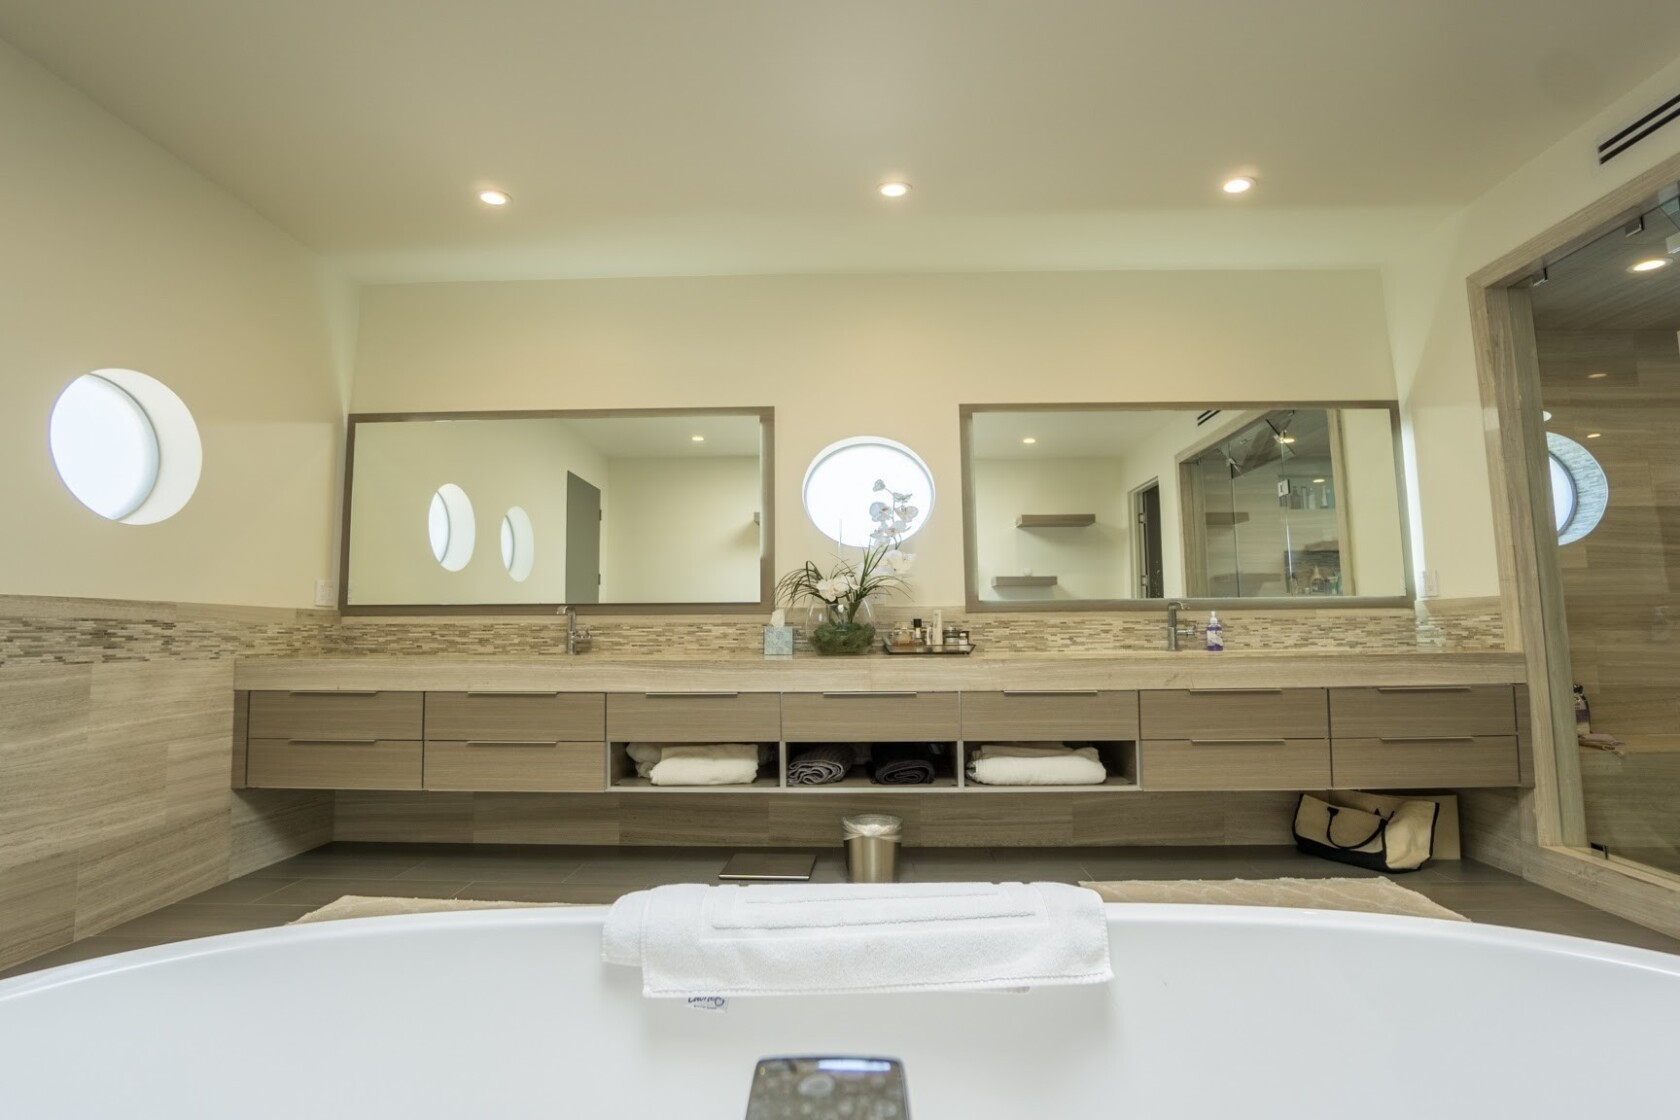 sanctuary style: bathroom vanities devoted to respite and